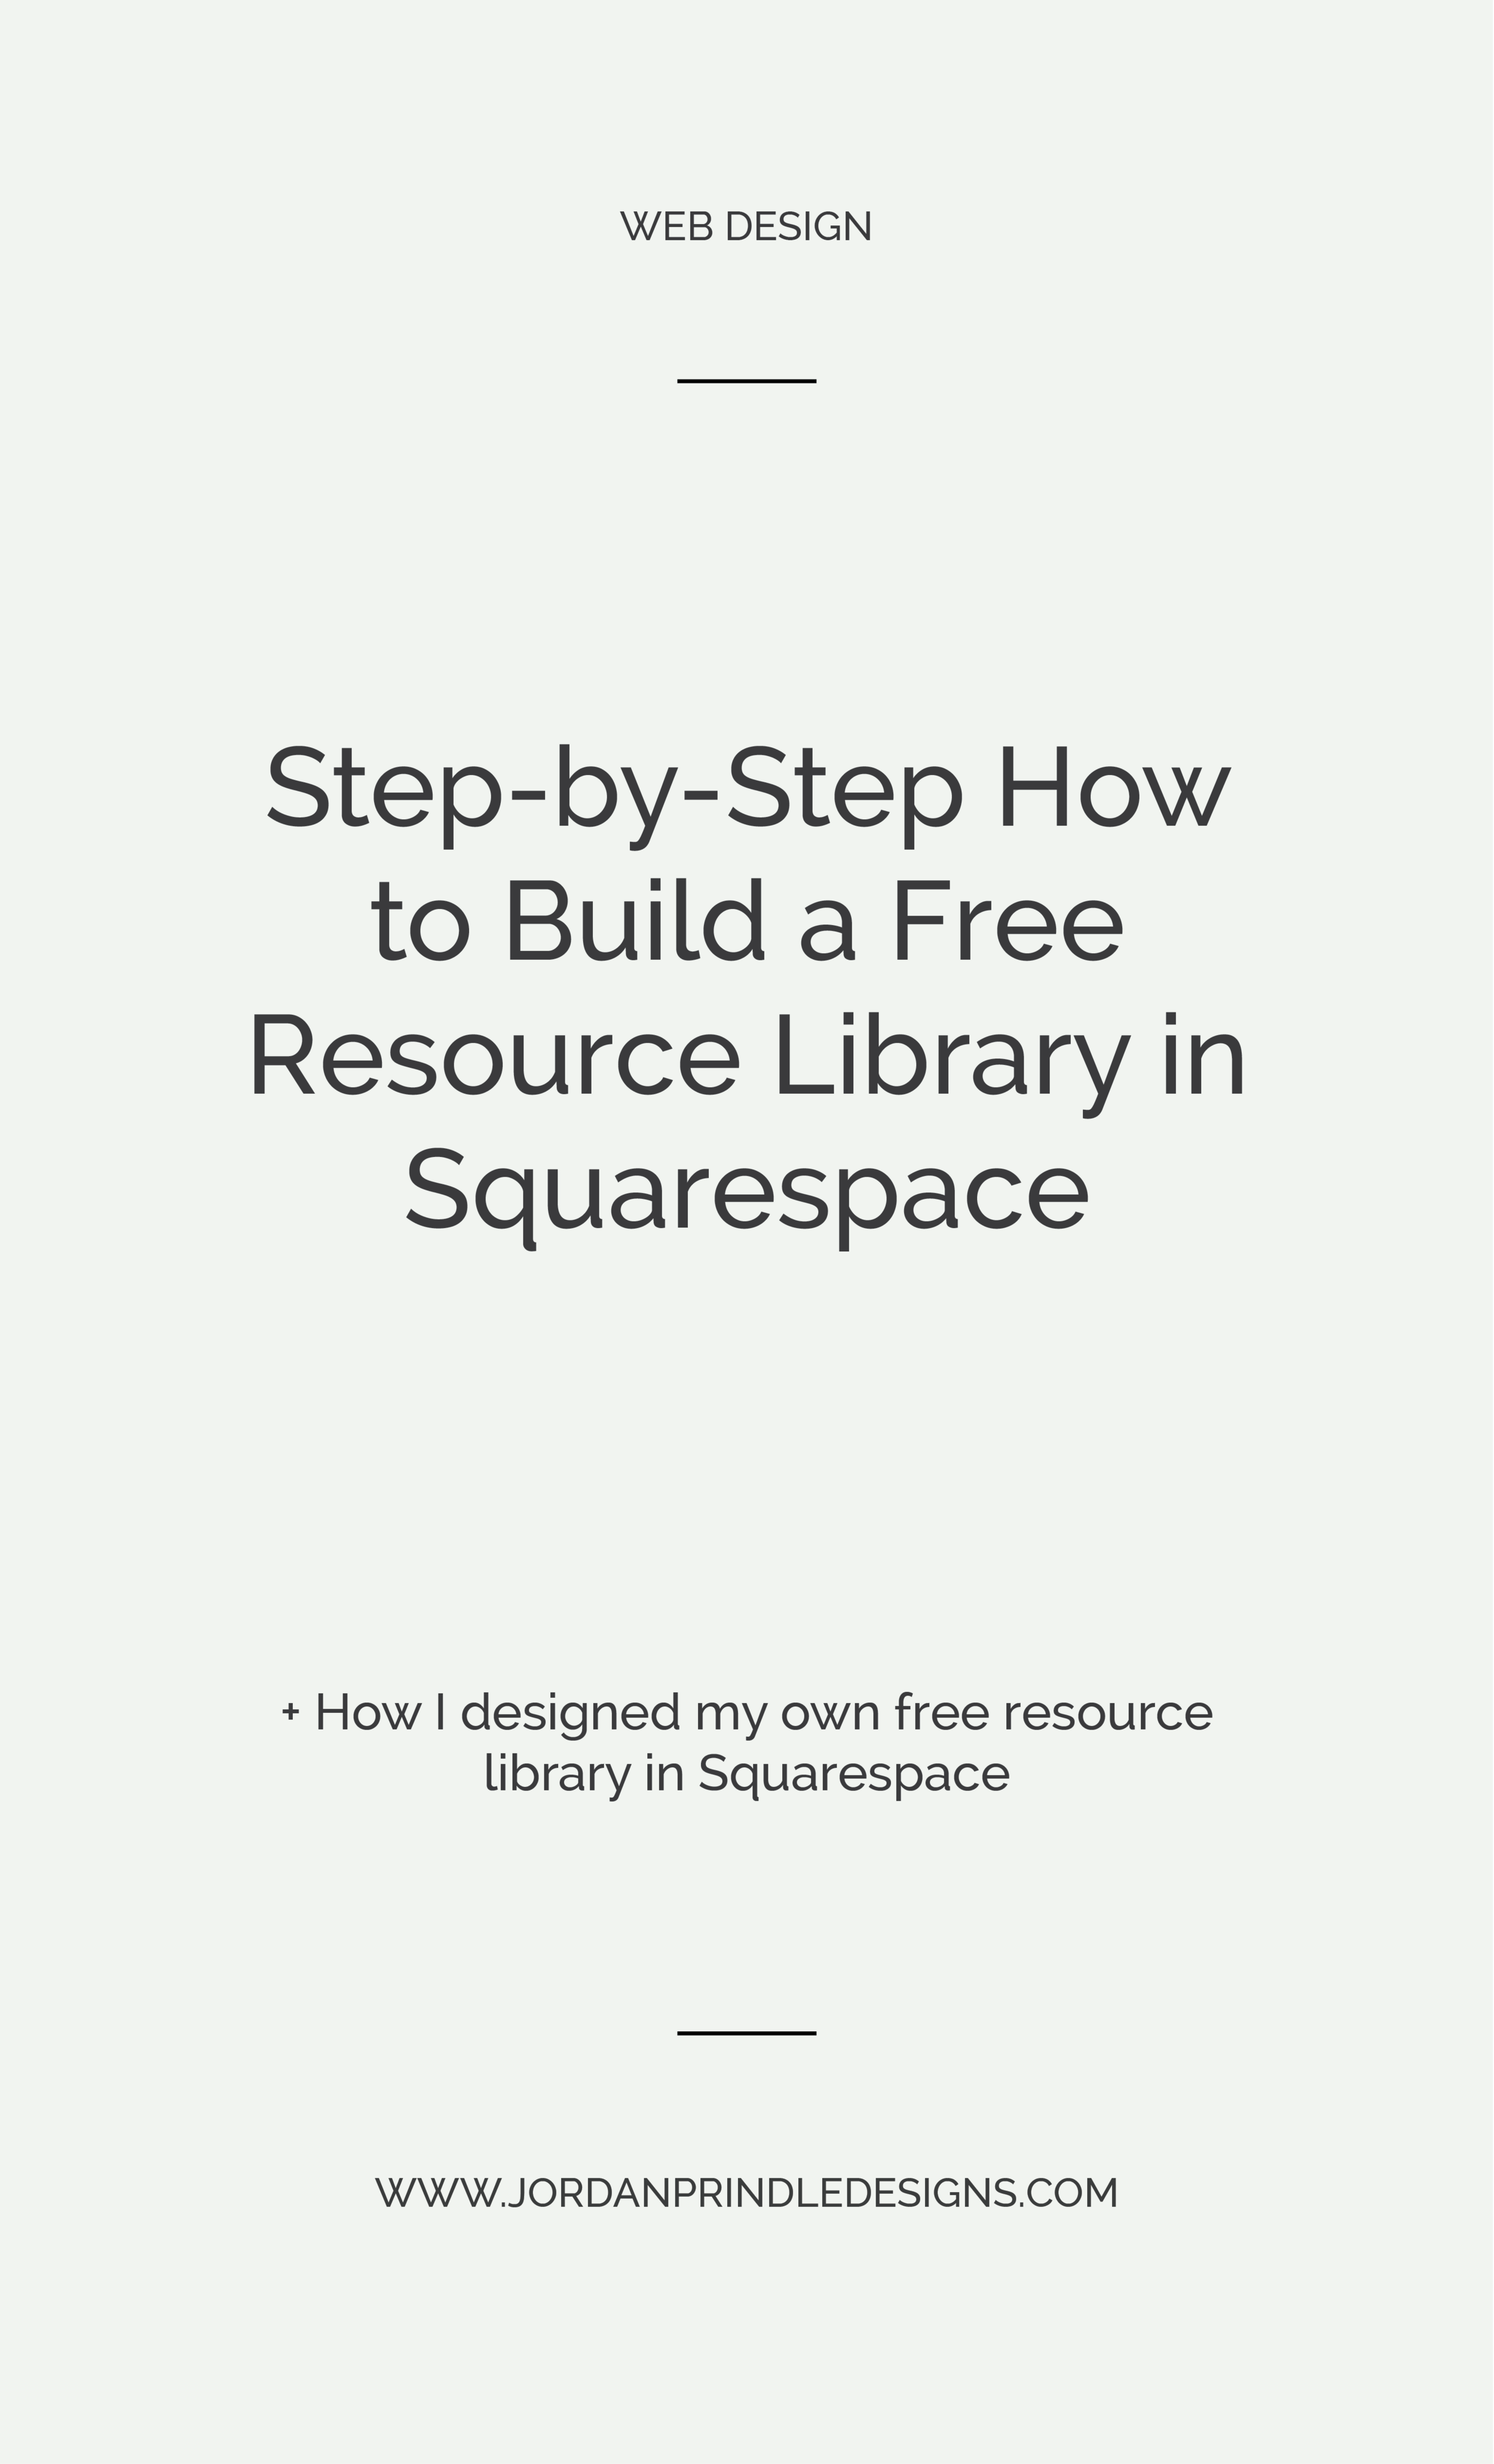 Step-by-step How to Build a Free Resource Library in Squarespace | Want to grow your email list easily? Have a Squarespace website? Keep reading at www.jordanprindledesigns.com #squarespace #webdesign #smallbusiness